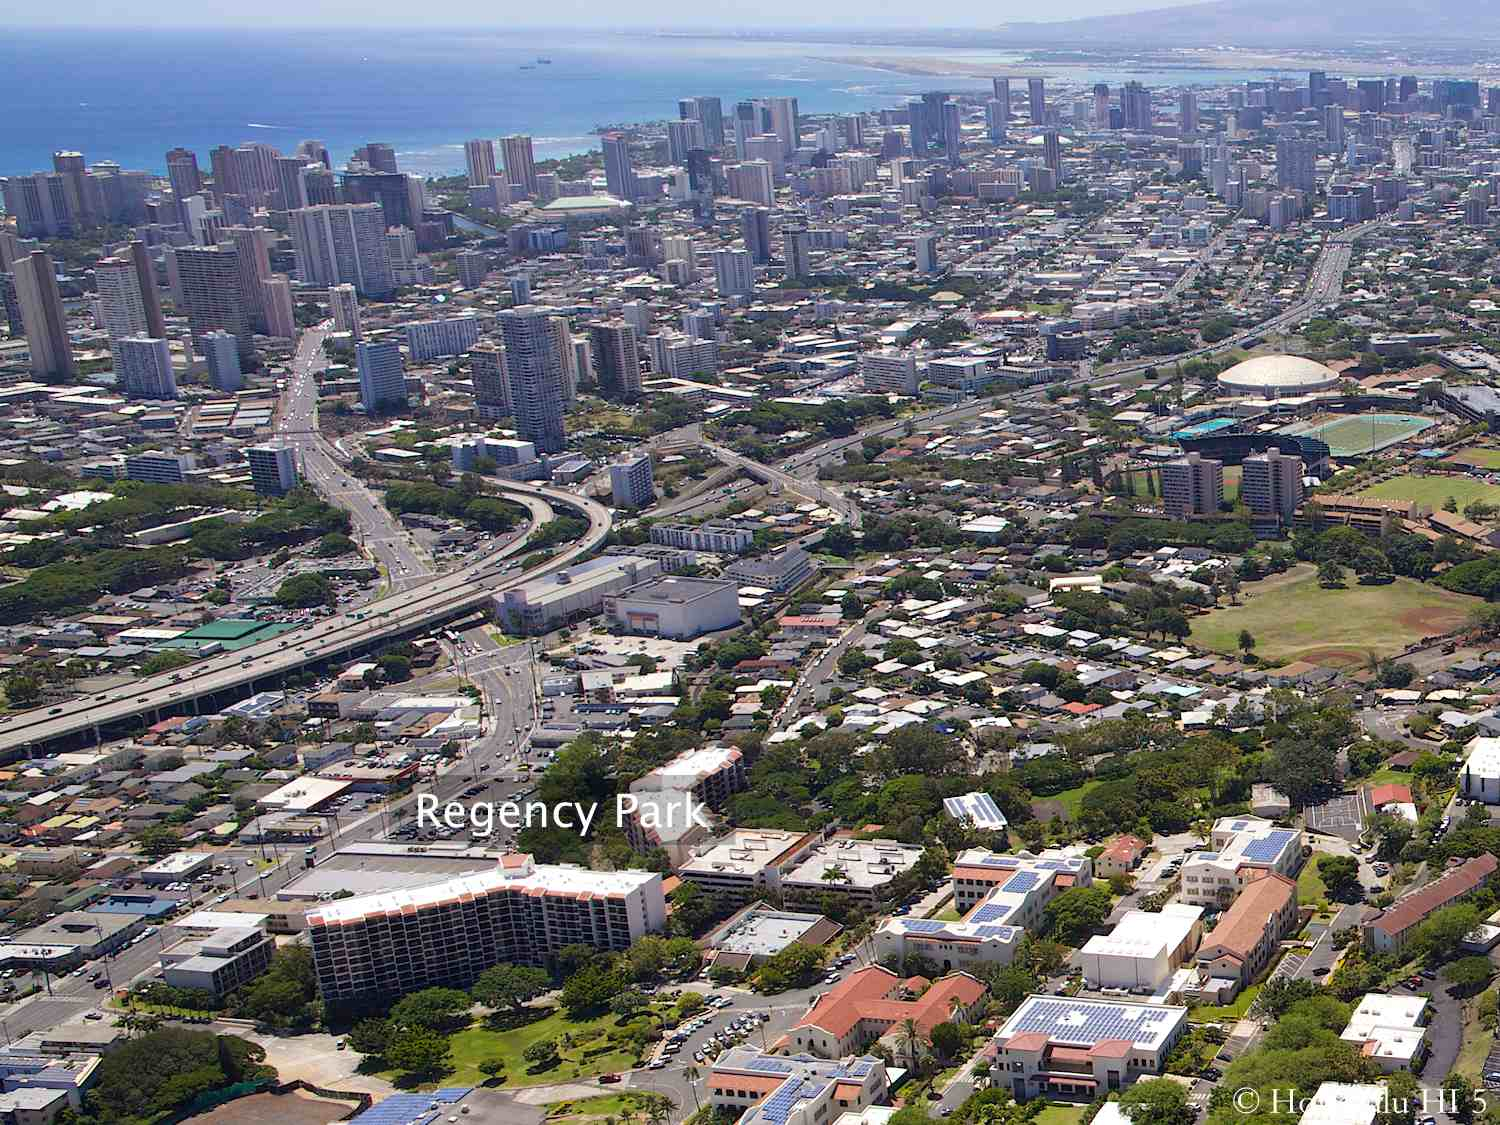 Regency Park Condo in Honolulu with Waikiki and Ocean in Distance